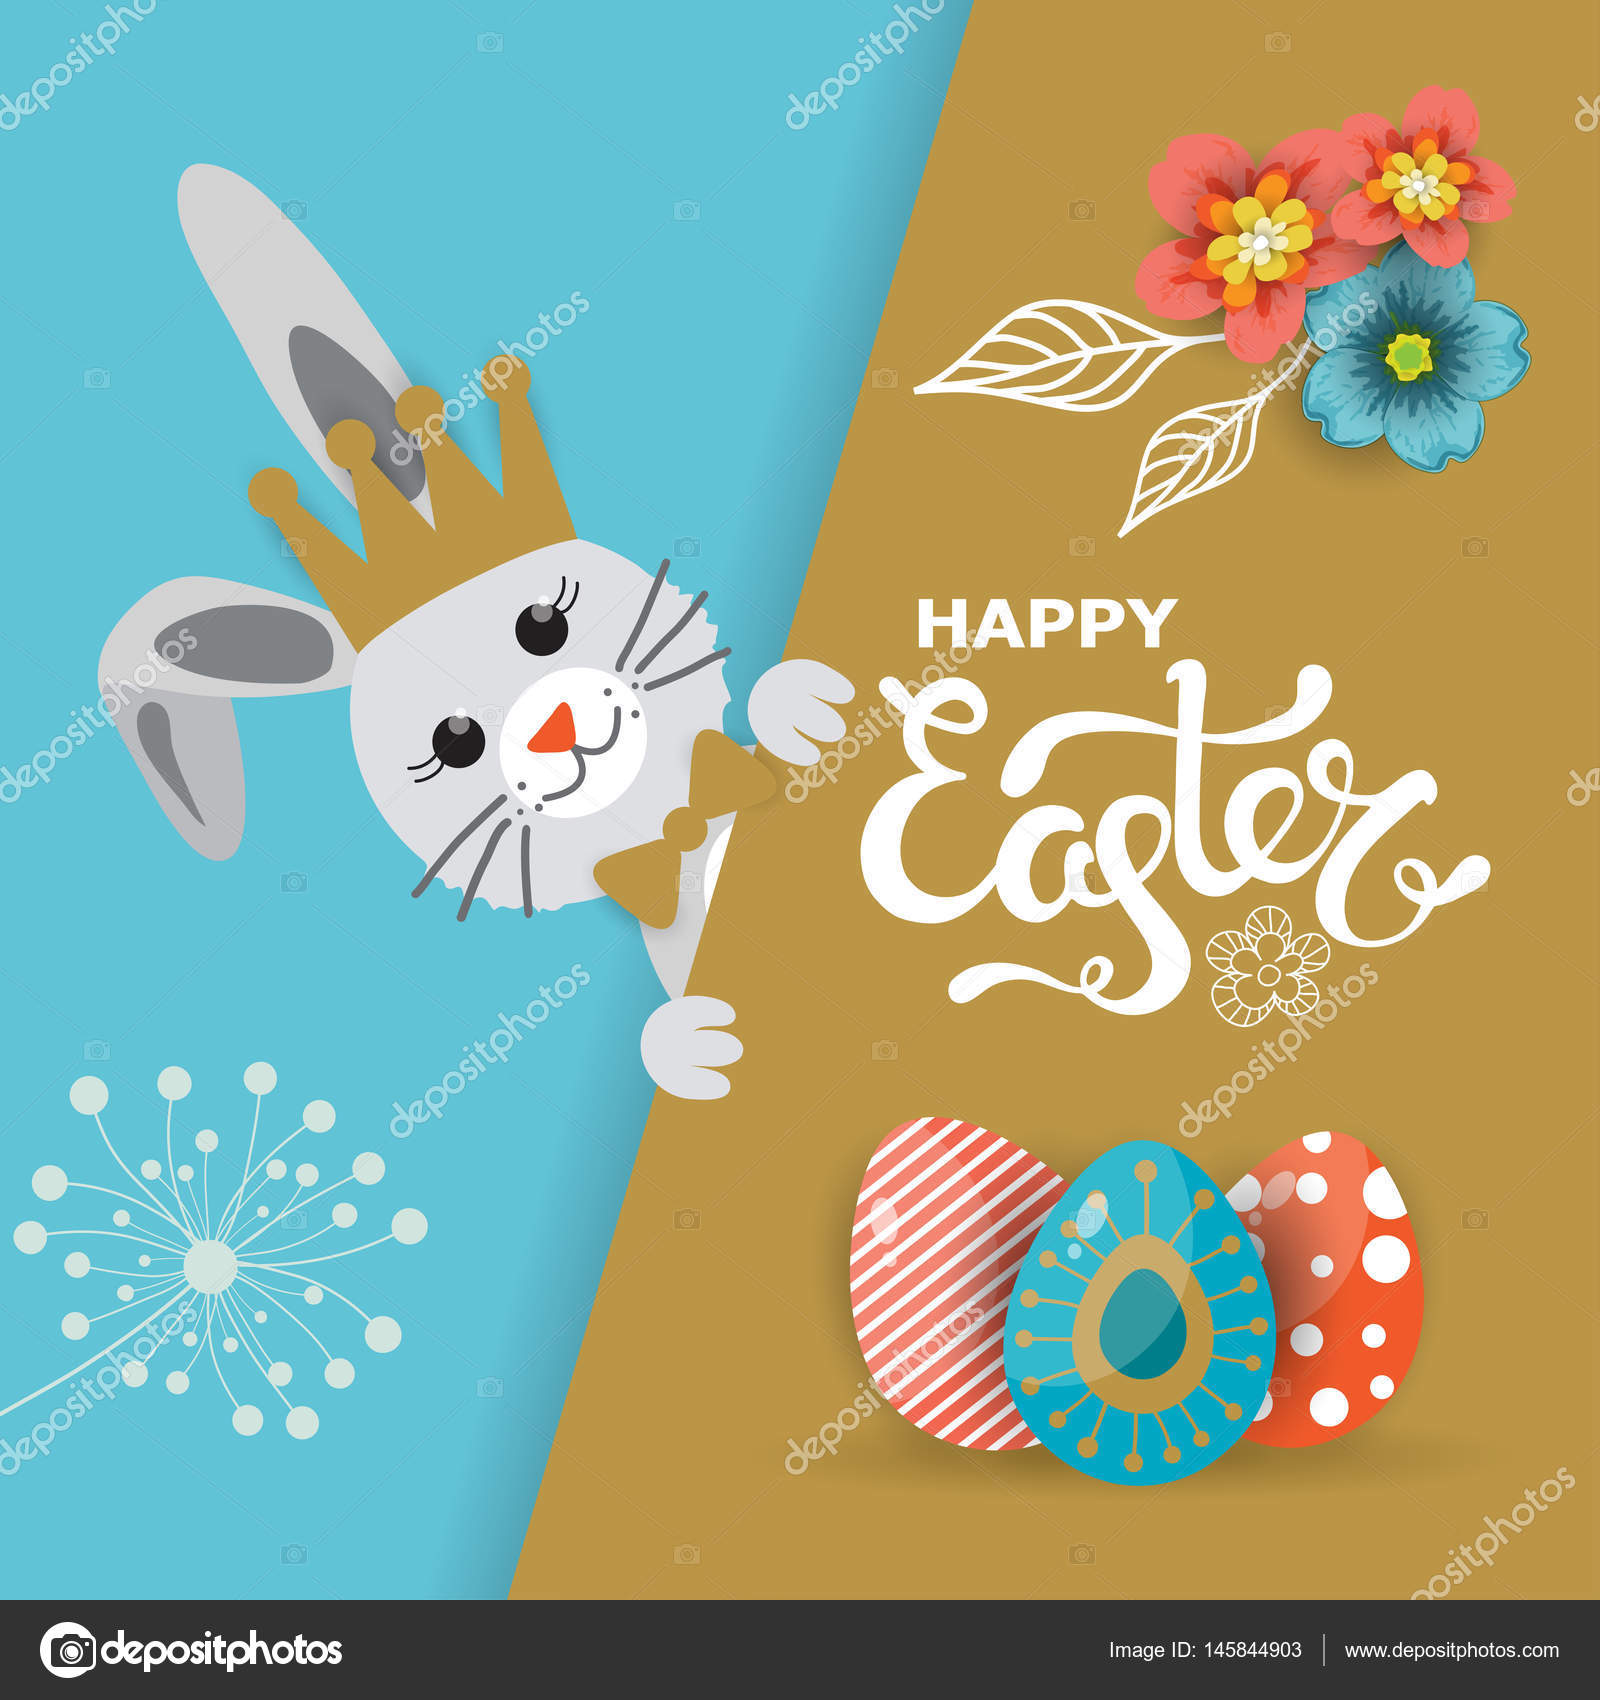 Easter day greeting card poster vector illustration stock vector easter day greeting card poster vector illustration stock vector m4hsunfo